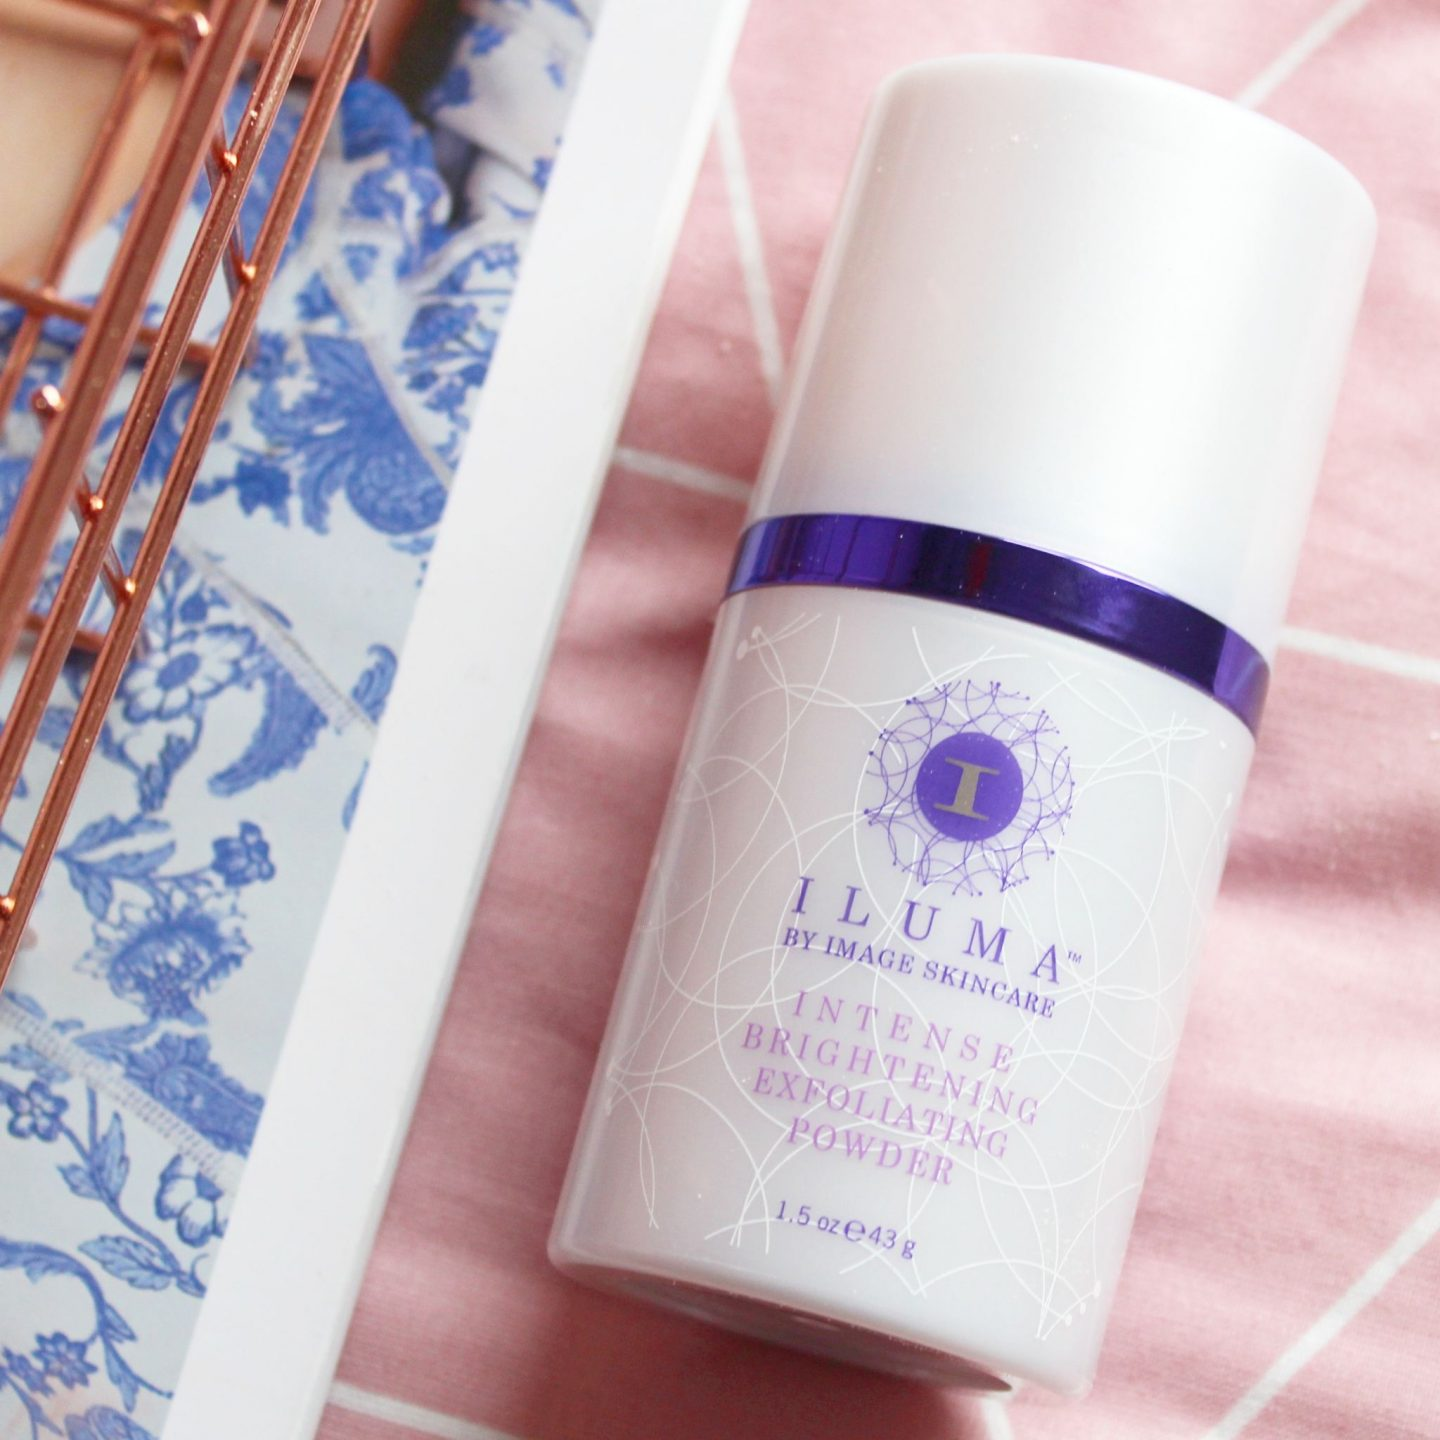 Halloween Skincare? | ILUMA Intense Brightening Exfoliating Powder with Pumkin Enzymes